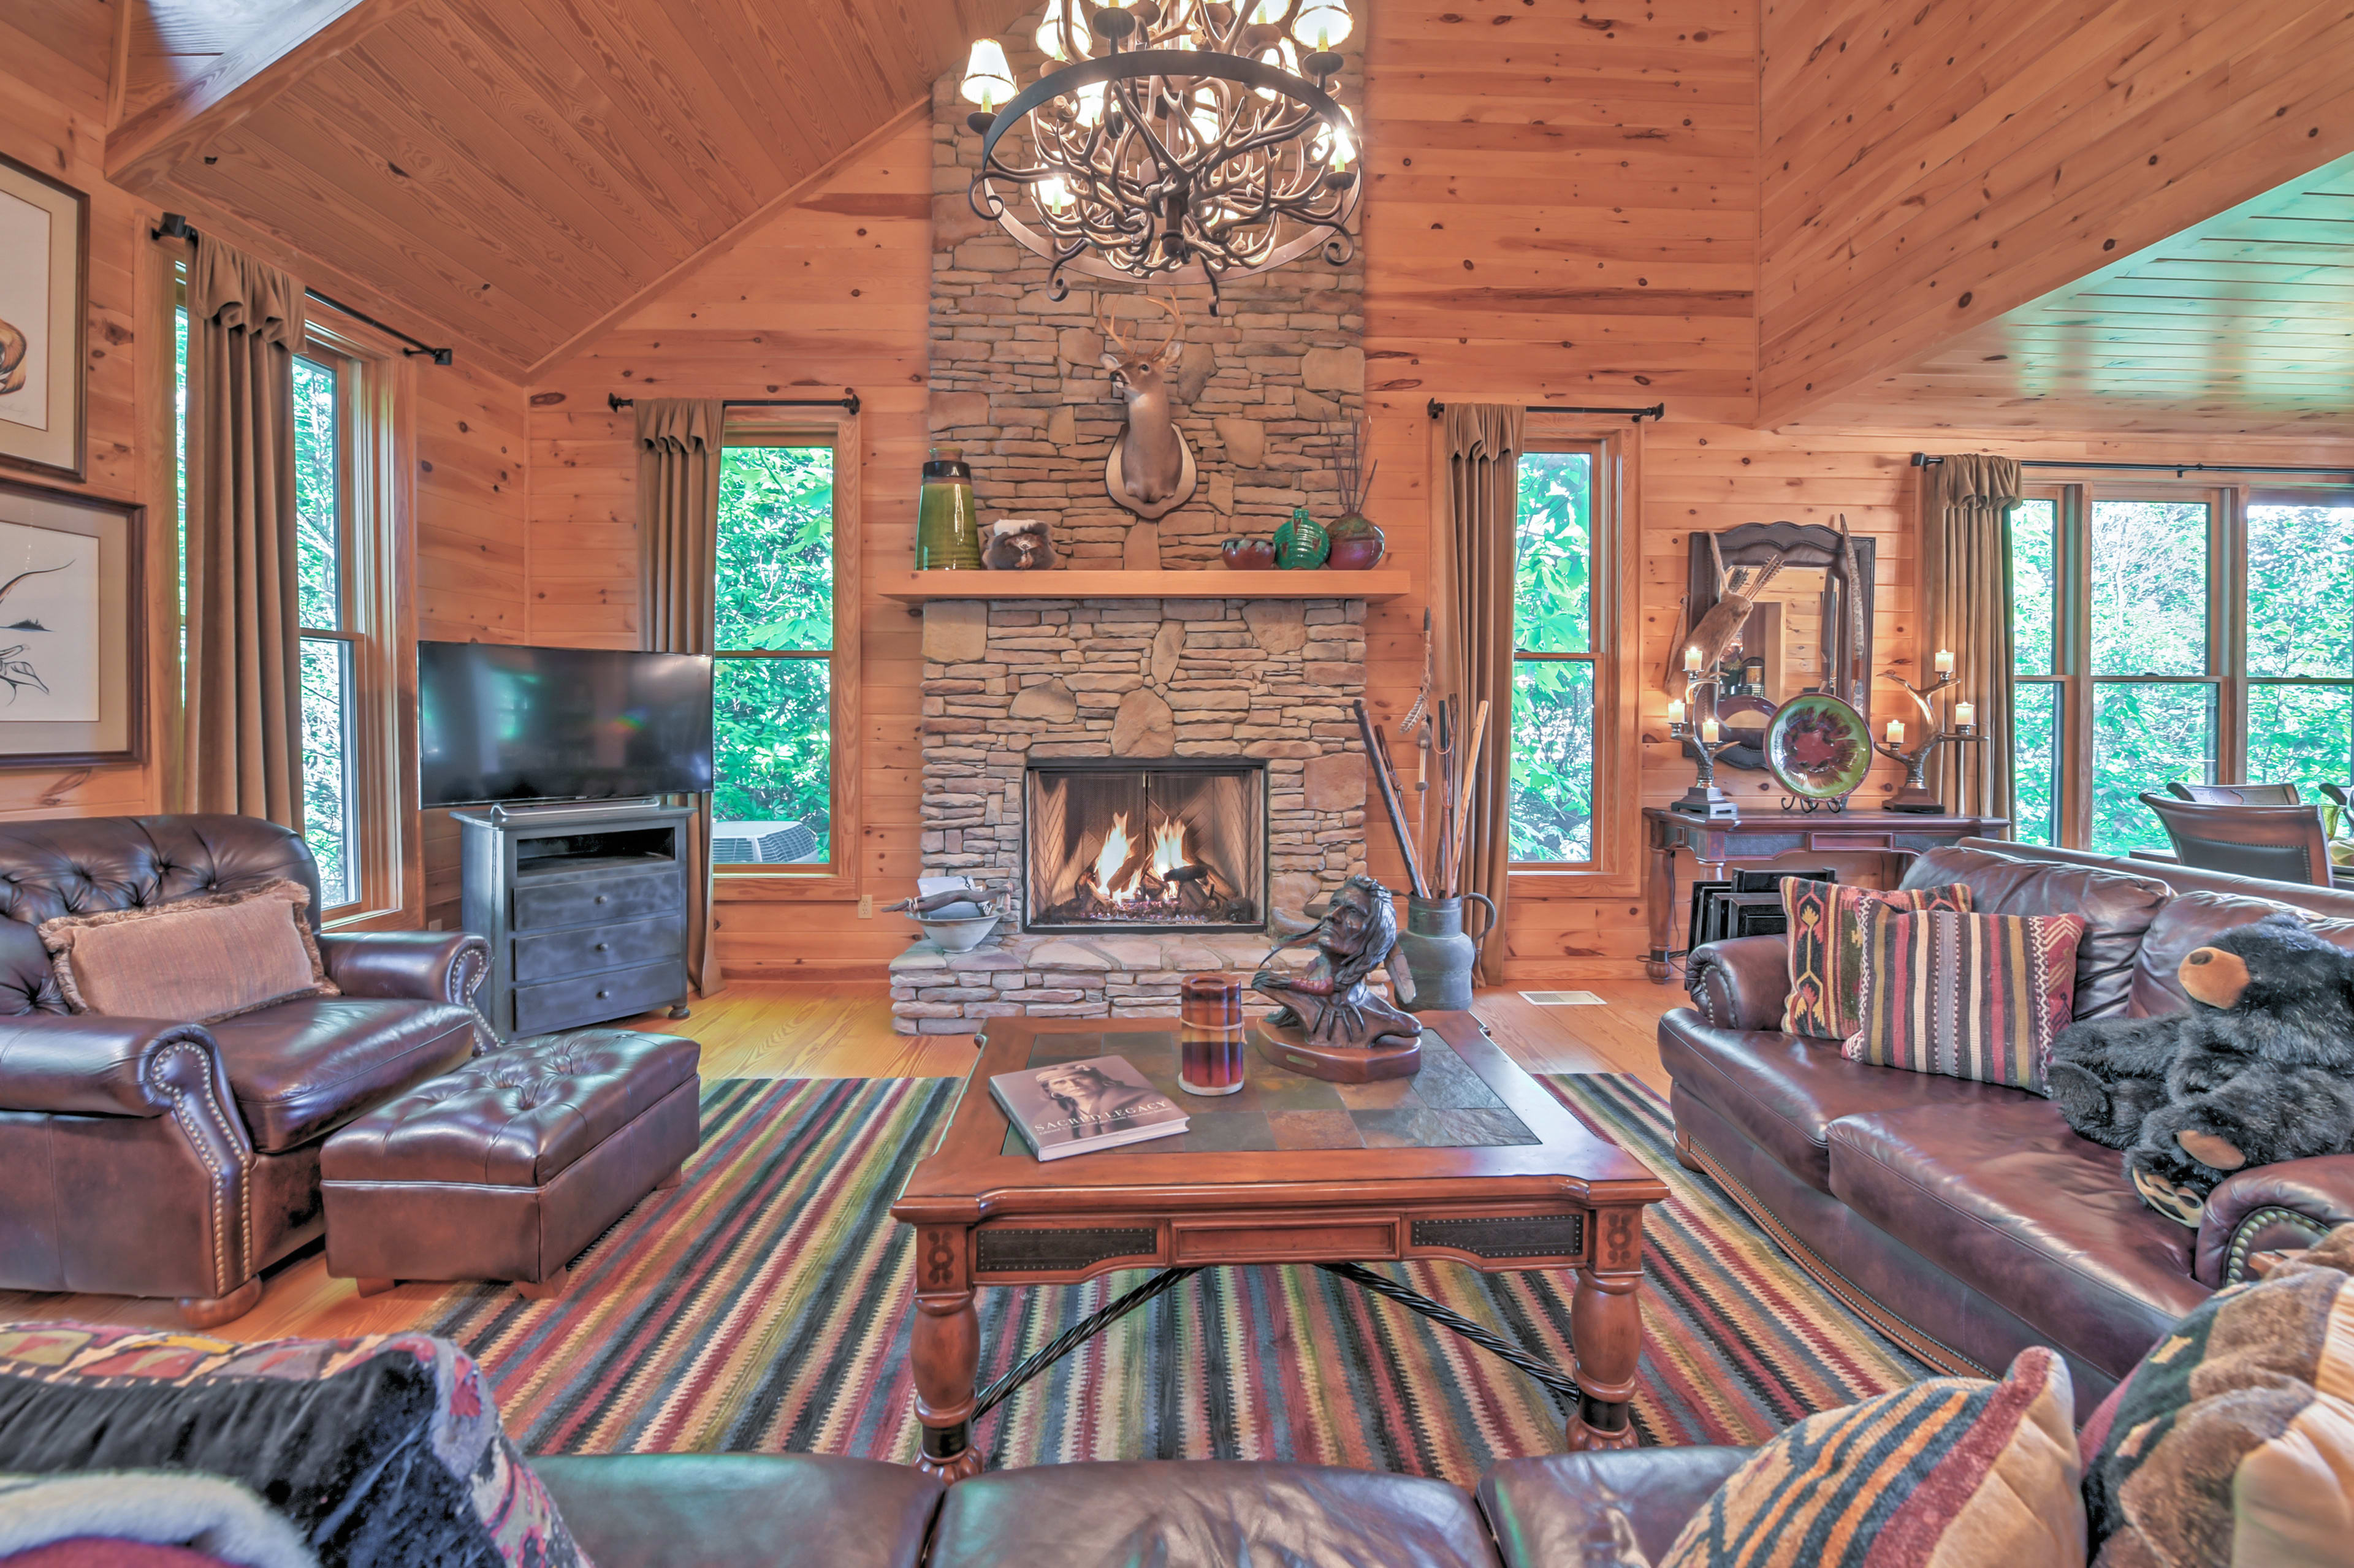 Warm your toes around the gorgeous fireplace.